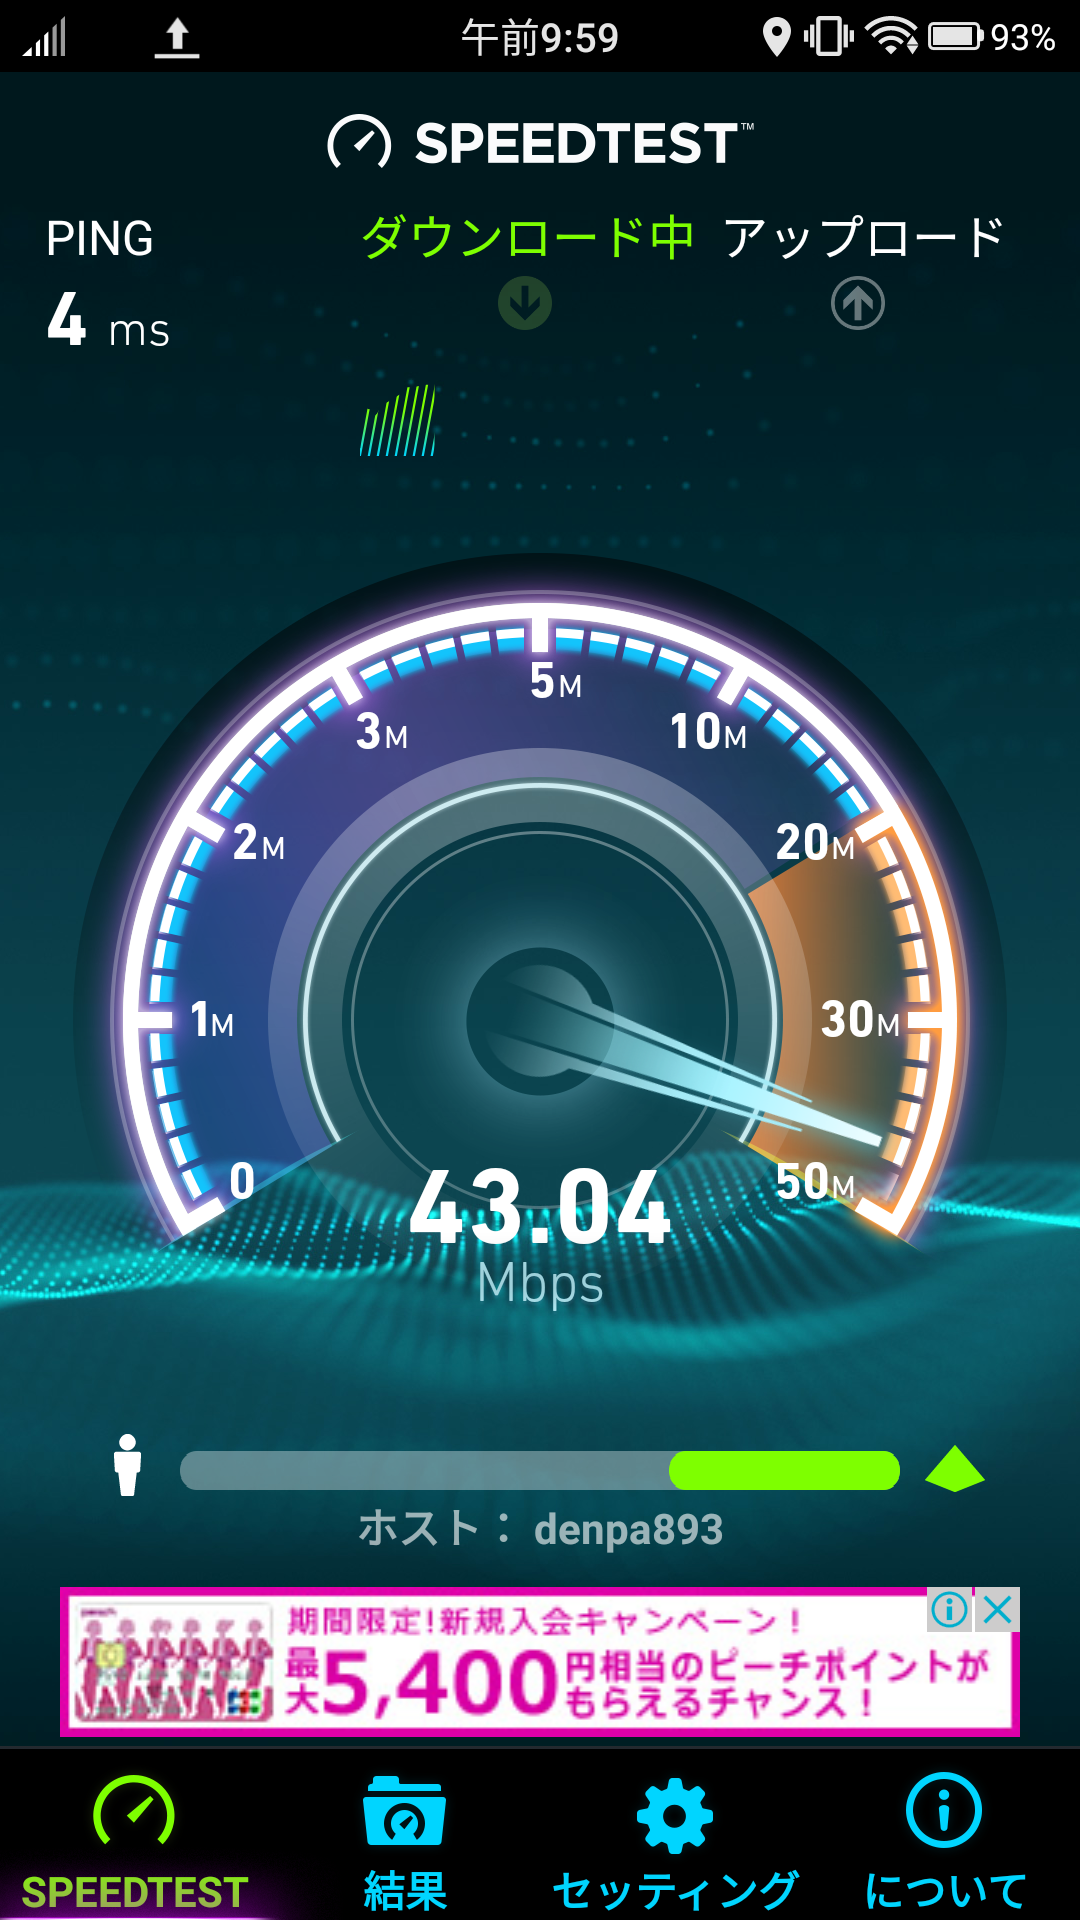 SPEEDTEST by Ooklaアプリでの回線速度測定。Androidスマホ